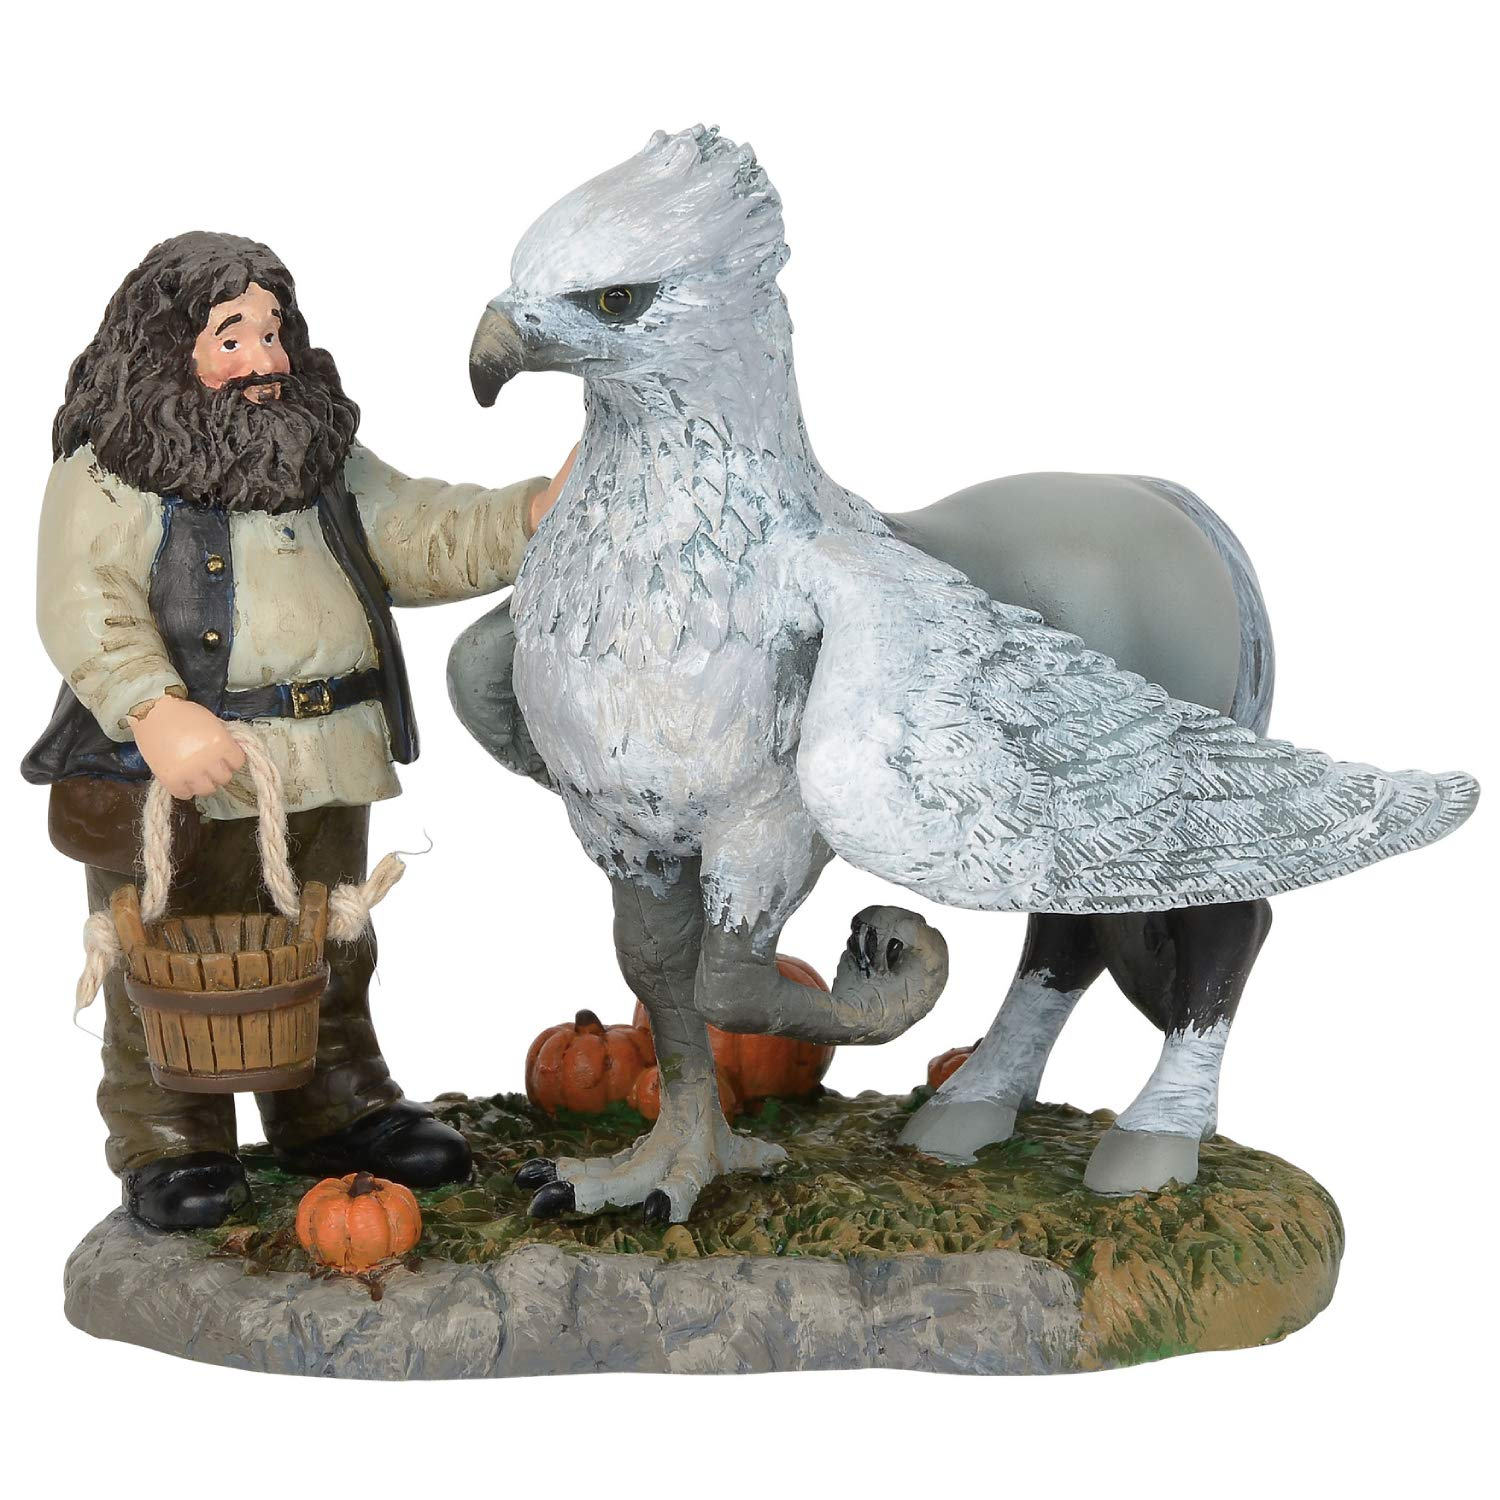 Department56 Harry Potter Village Accessories Proud Hippogriff Indeed Figurine, 3.35'', Multicolor by Department56 (Image #1)